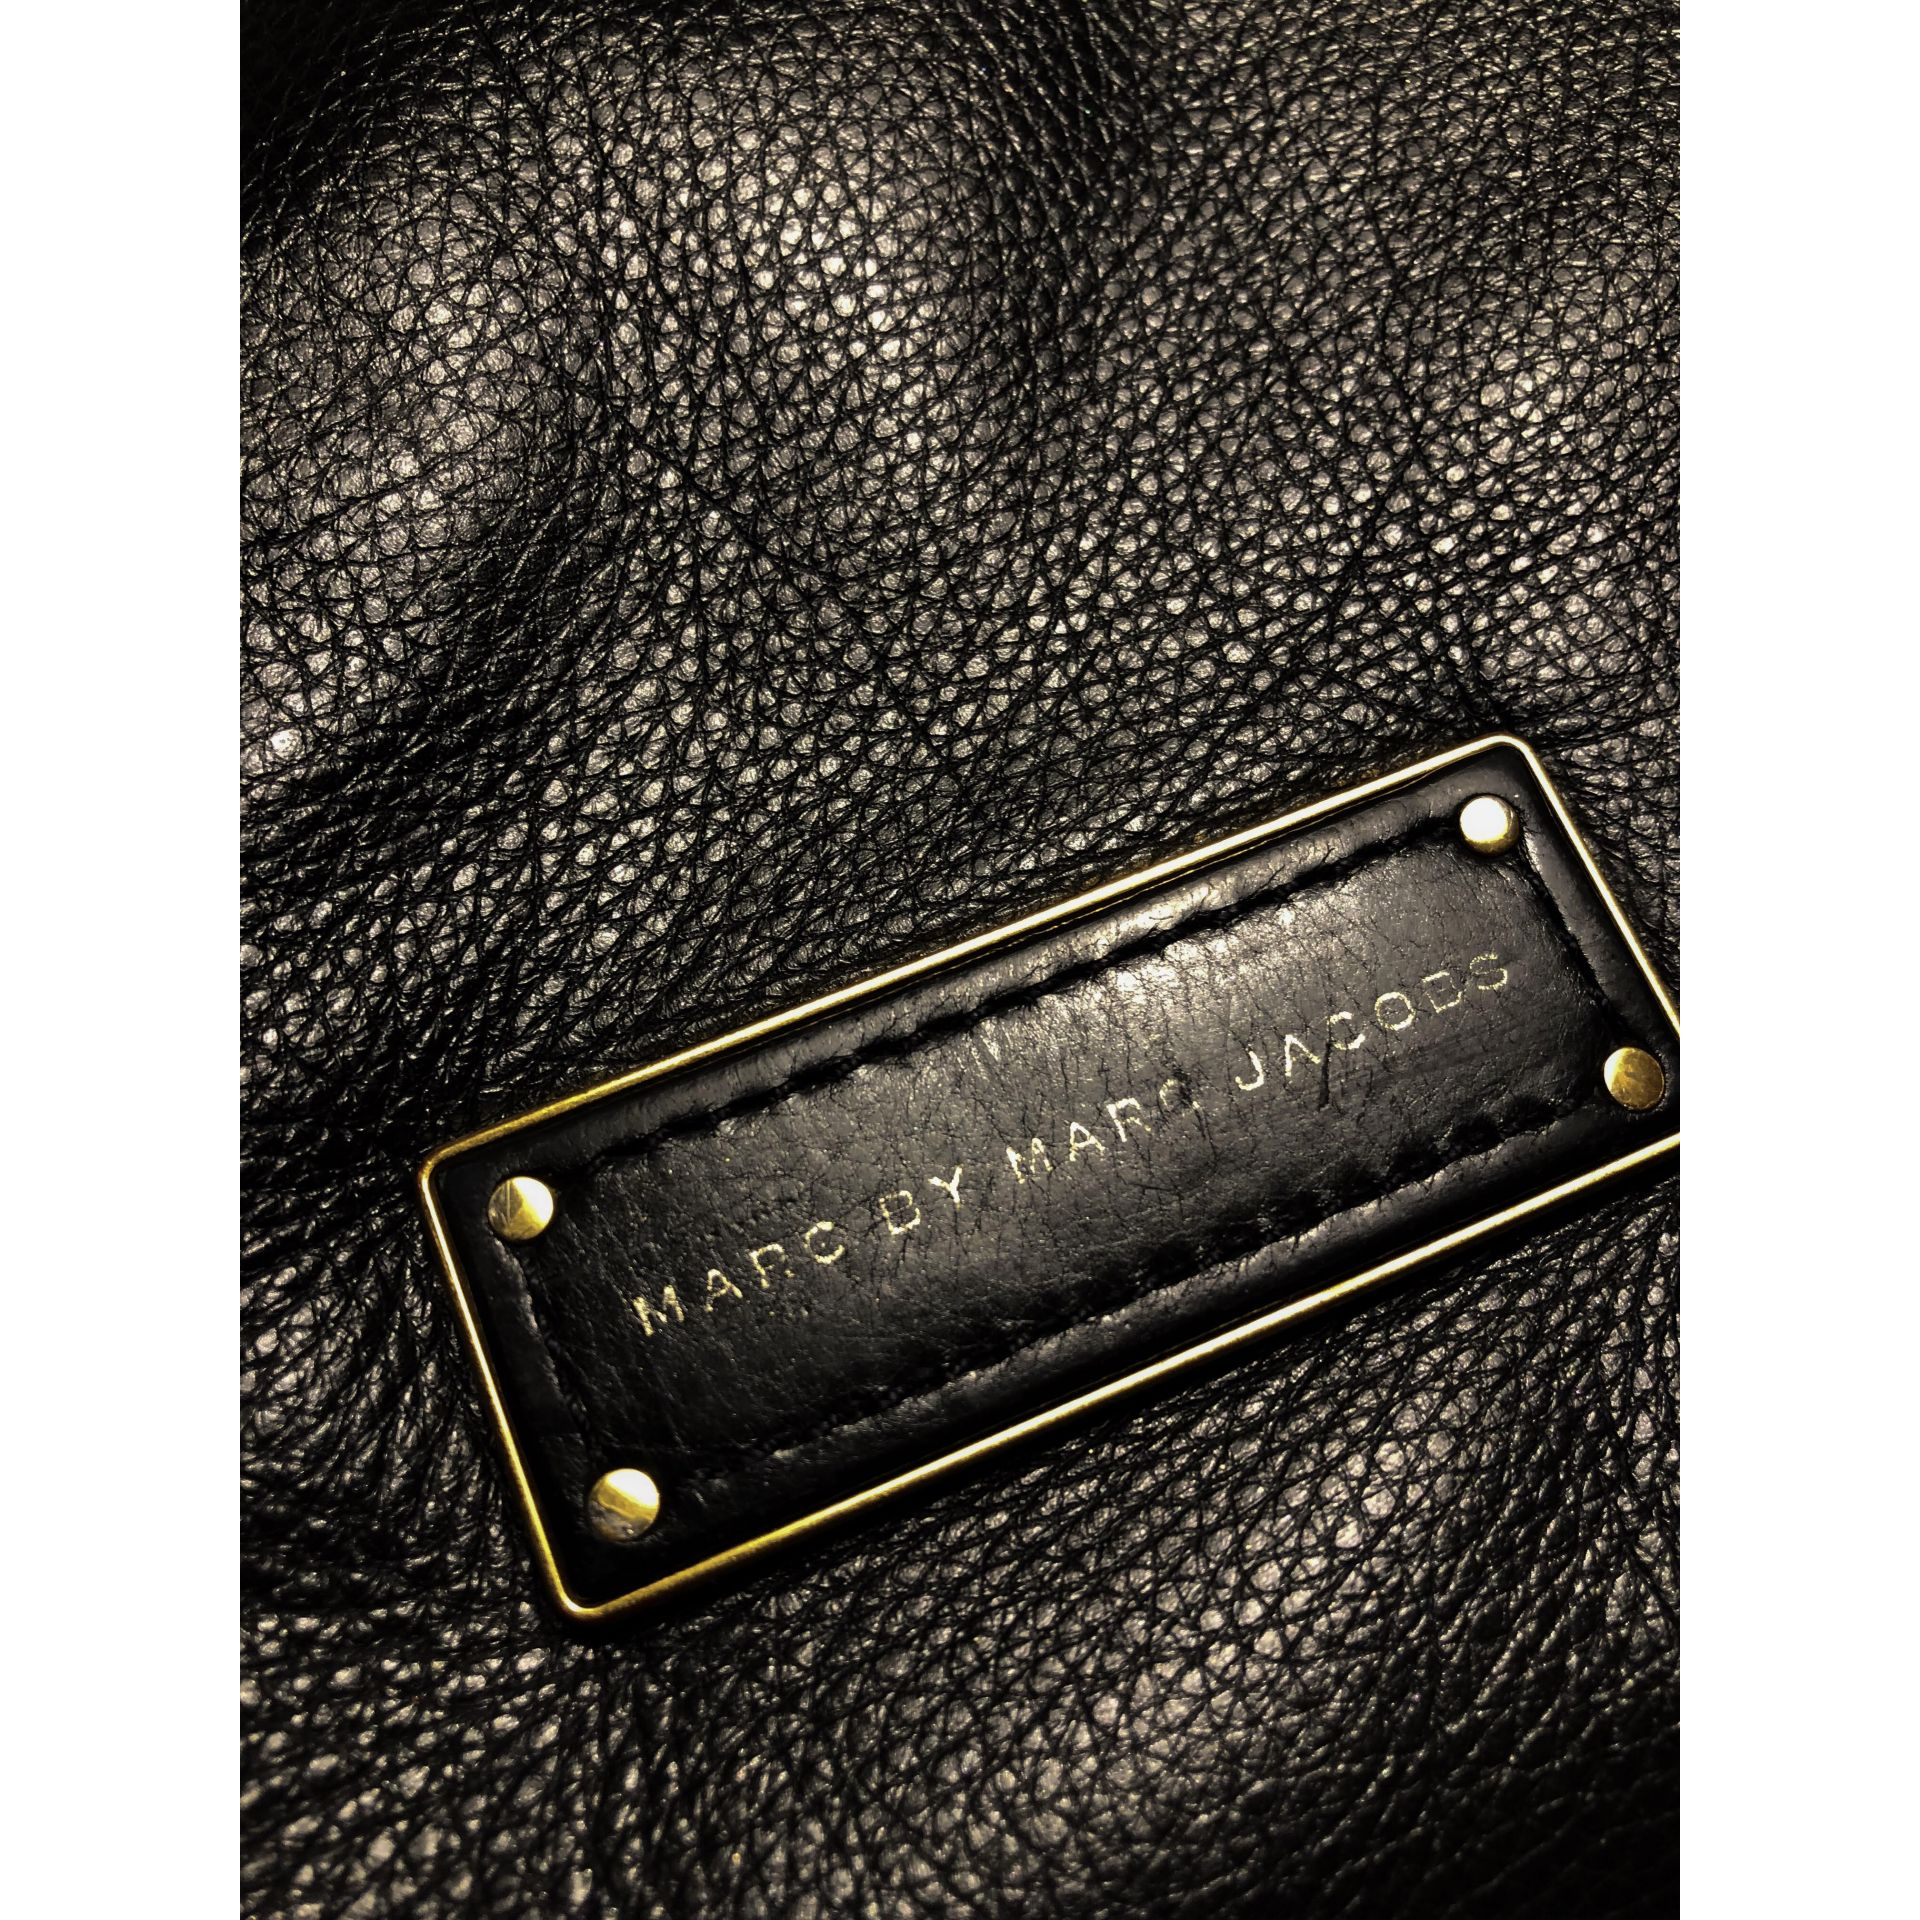 798967b7acb95 Torby Marc by marc jacobs Torebka Marc by 1231